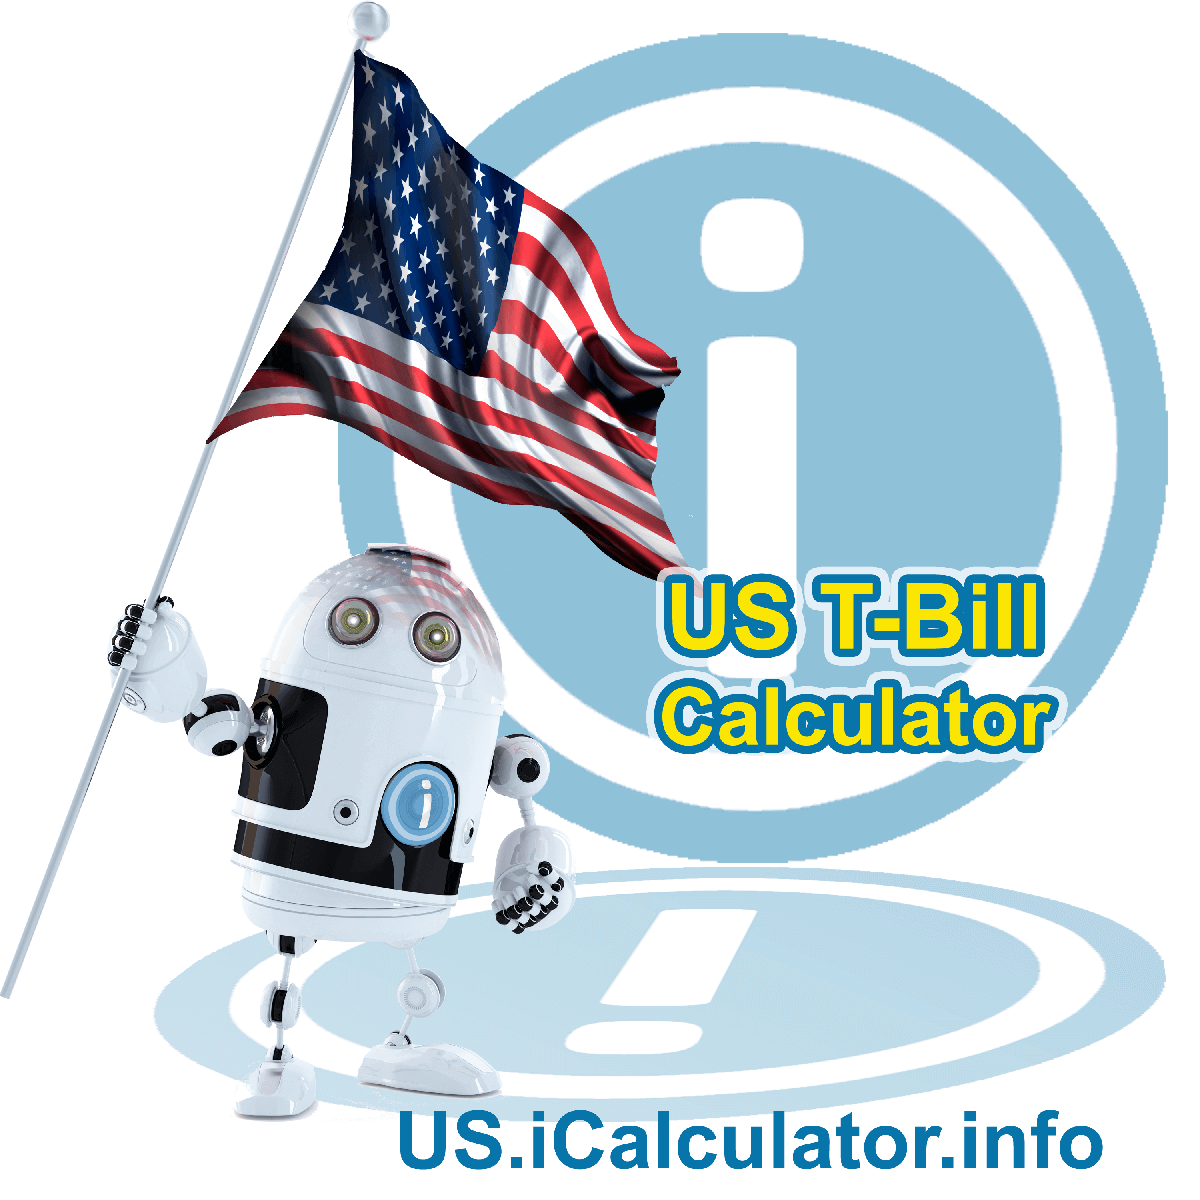 US T-Bill Calculator will calculate the 3 monthly interest on a Treasury Bill, the annual interest on a T-bill and other T-bill periods depending on the duration of the T-bill bond, the face value and the amount paid for the T-bill during the auction process.